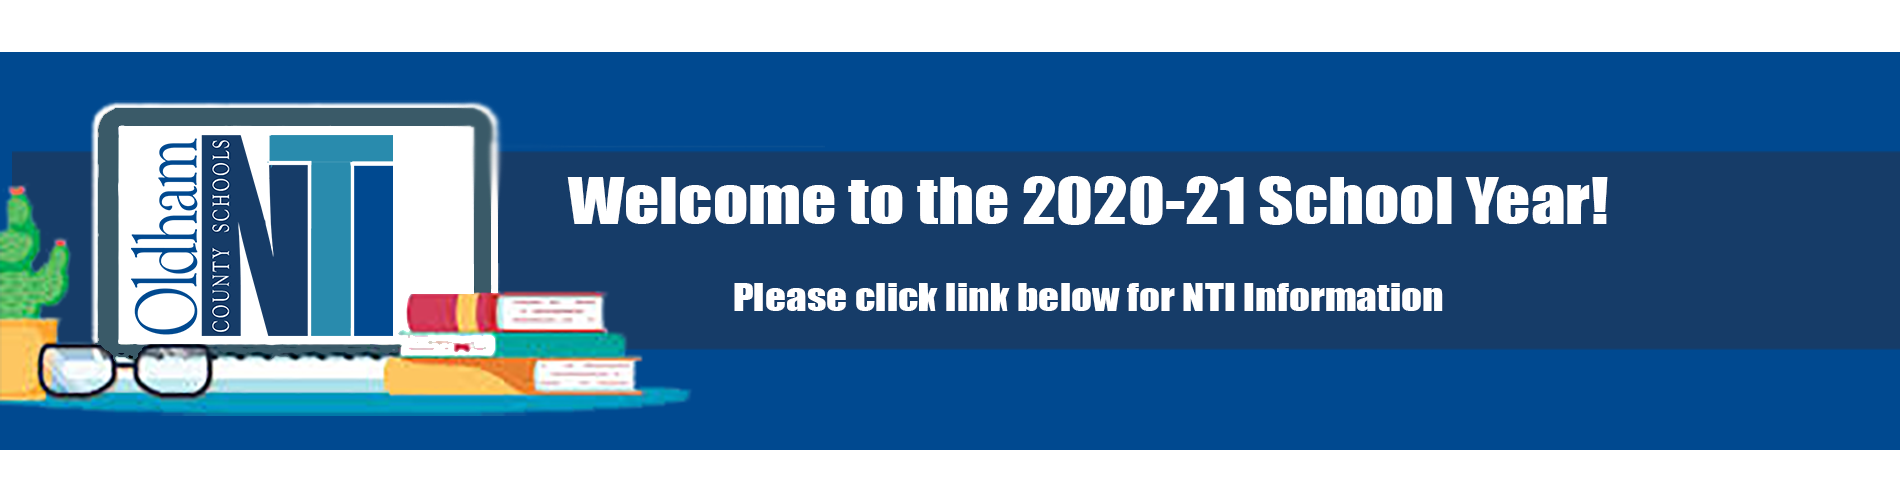 Welcome to the 2020-21 School Year! Please click link below for NTI Information and BAHS News